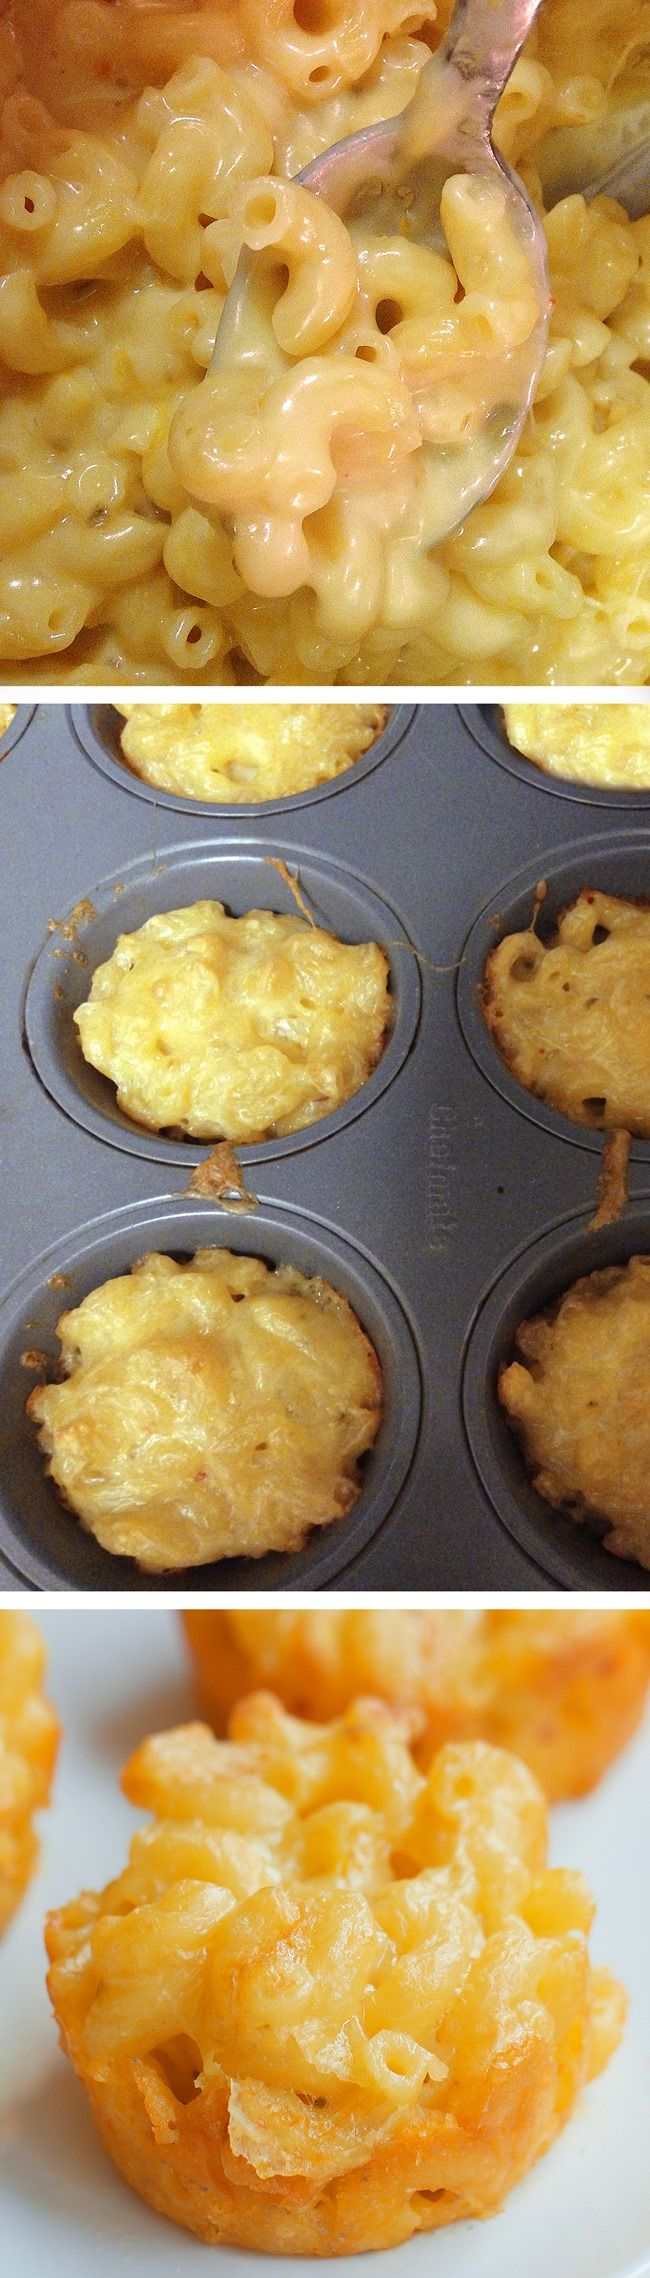 "Mac & Cheese To Go – from @choccoveredkt – Bake them in a muffin tin for an easy ""on the go"" snack... Great for lunchboxes too...  http://chocolatecoveredkatie.com/2016/02/01/baked-mac-cheese-cups-go/"